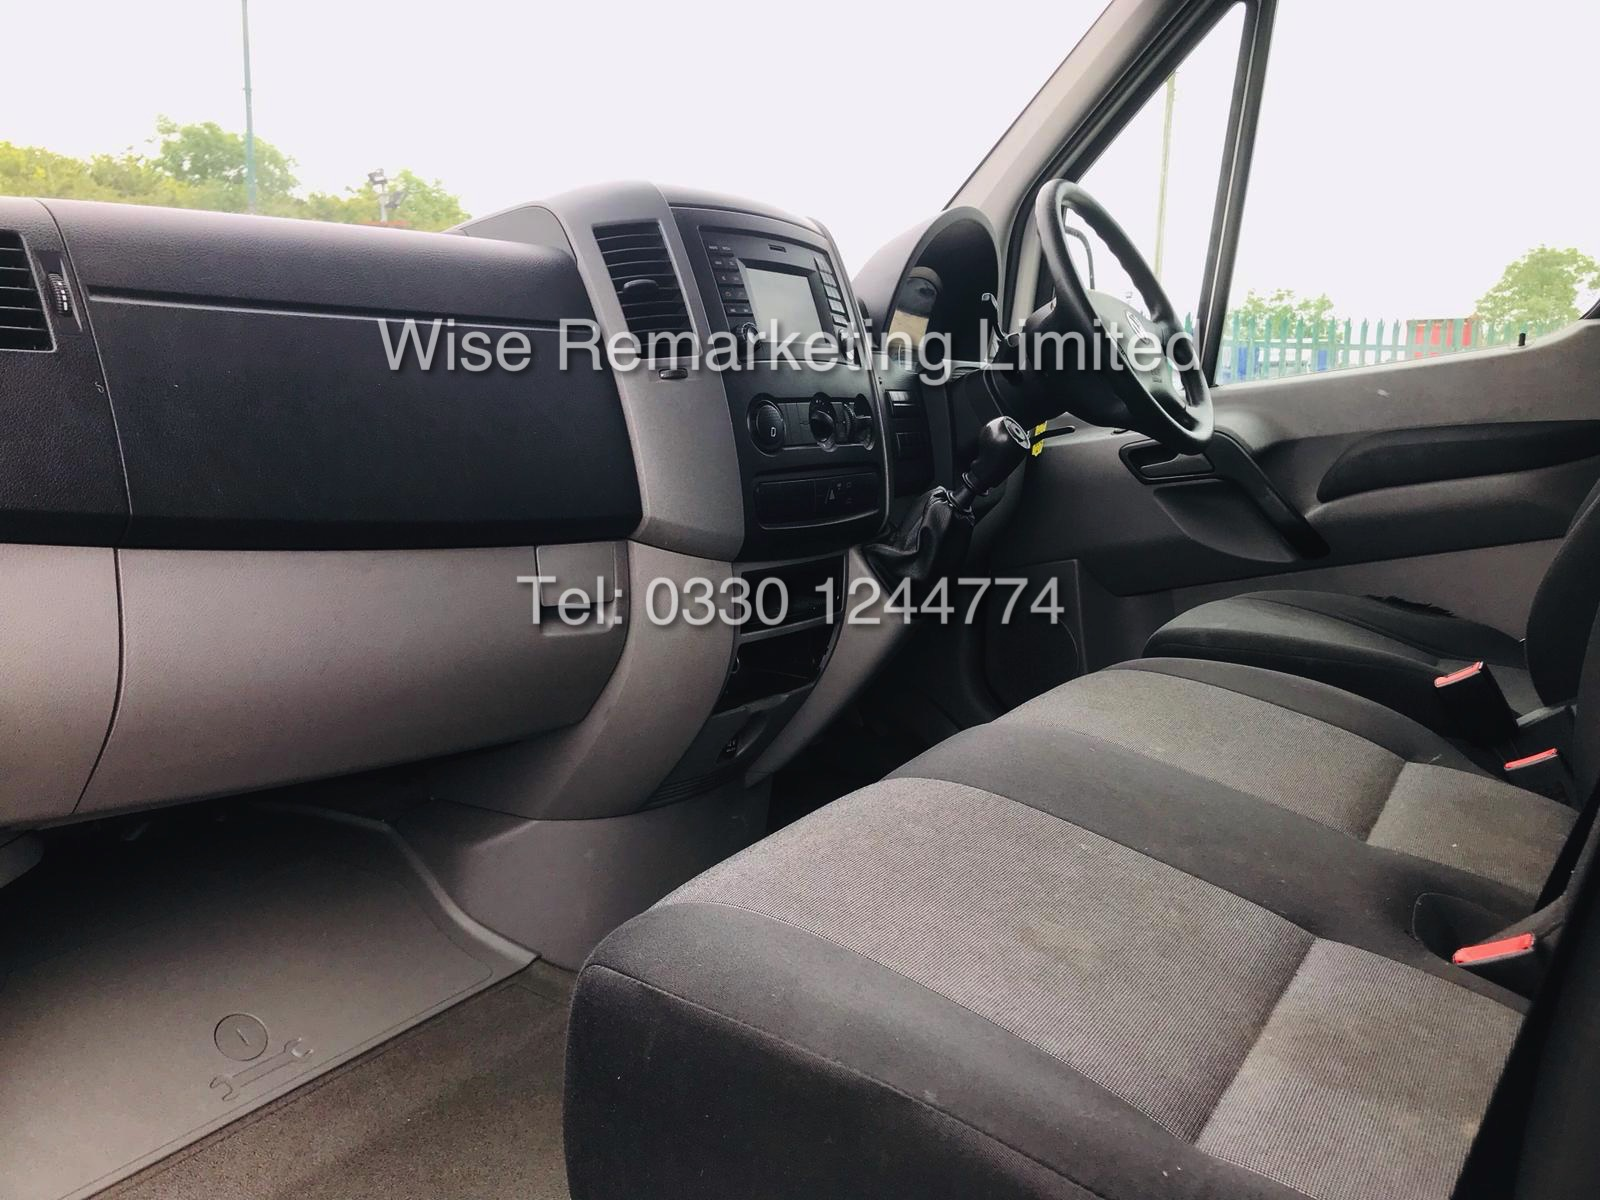 VOLKSWAGEN CRAFTER CR35 2.0 TDI LONG WHEEL BASE 2016 MODEL - Image 8 of 14